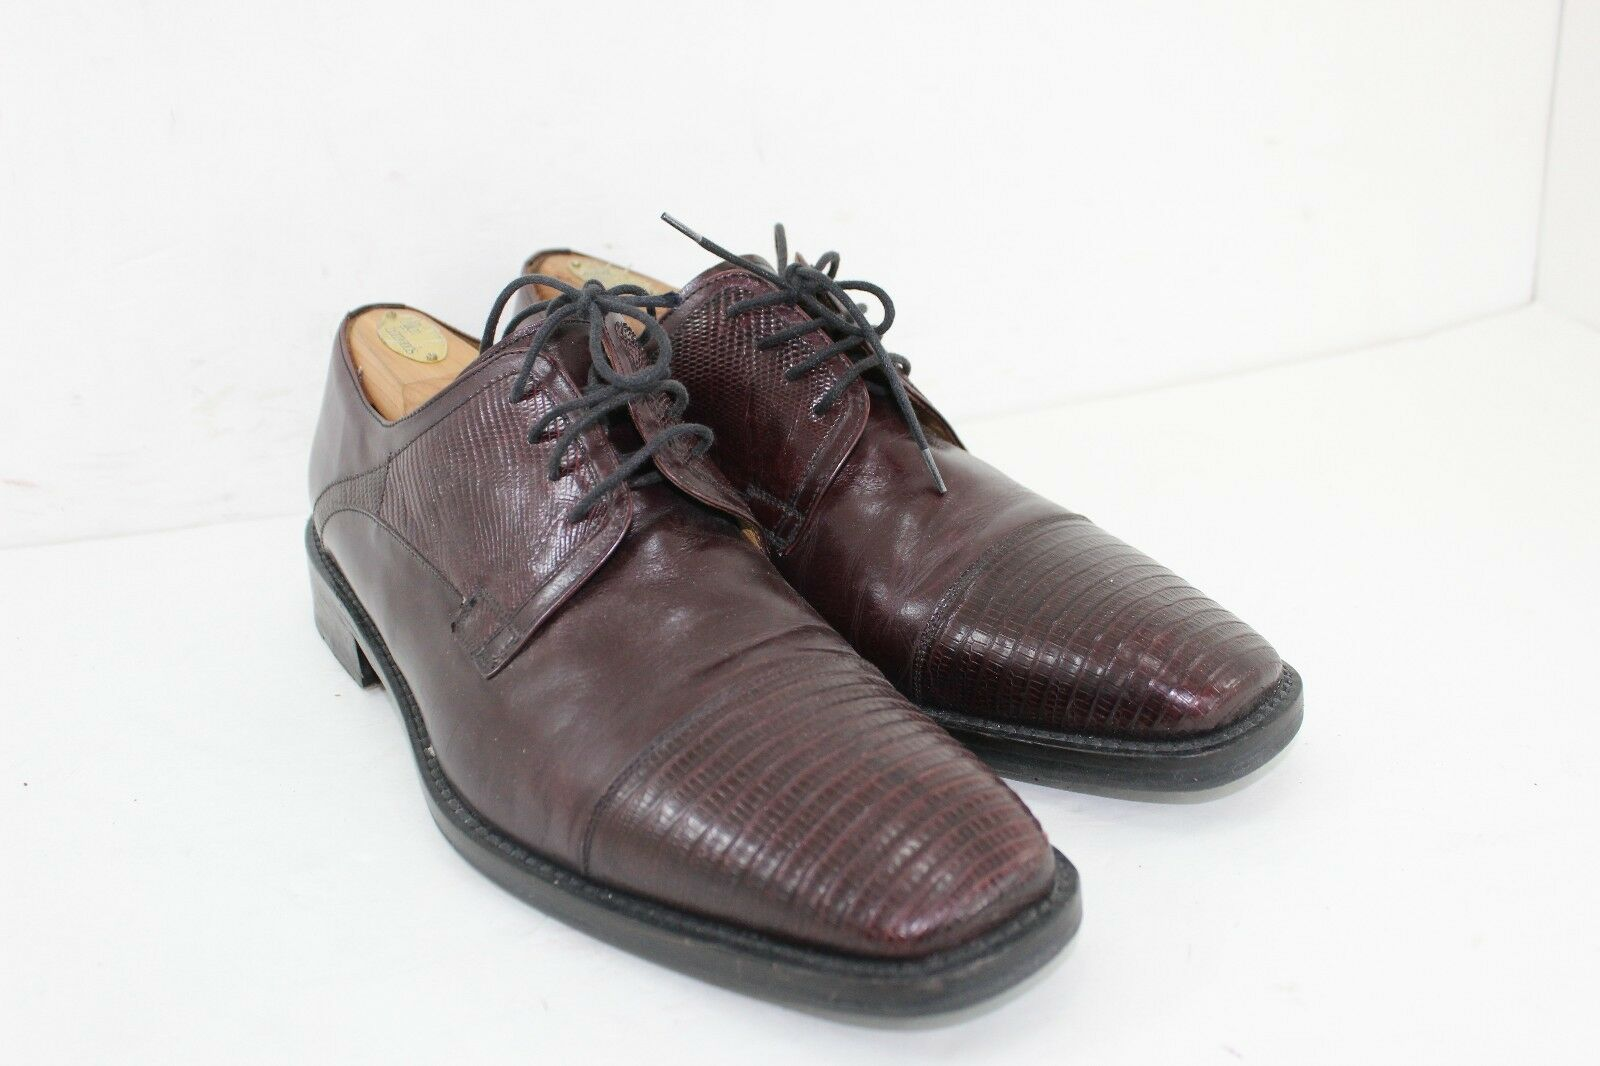 AVVENTURA HANDMADE IN SPAIN GENUINE LIZARD SKIN SIZE 10 BROWNS BROWNS BROWNS IN GREAT CONDITIO 457634